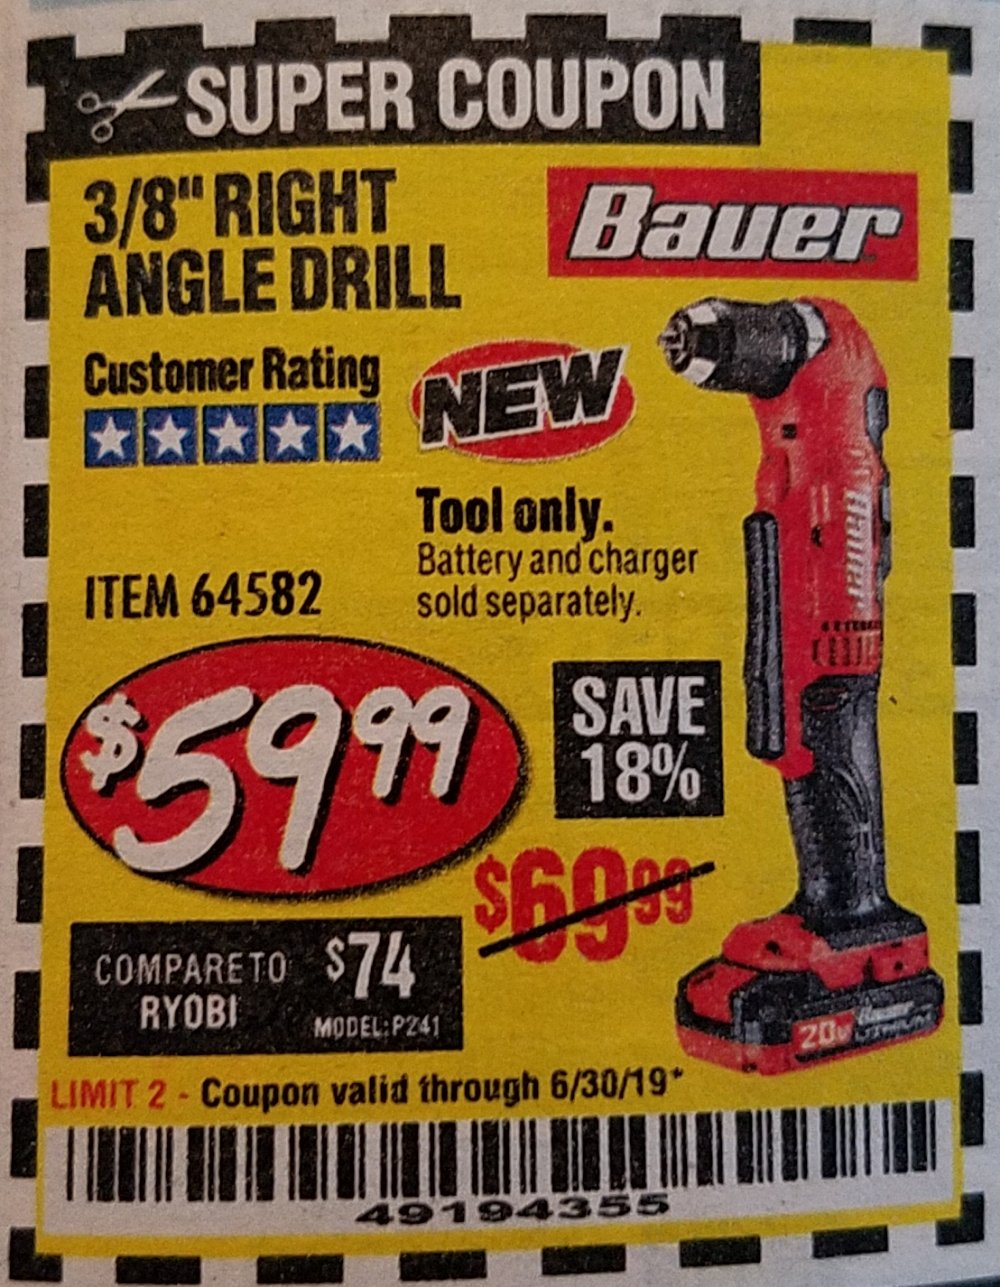 Harbor Freight Coupon, HF Coupons - Bauer 20 Volt Hypermax Lithium Cordless 3/8